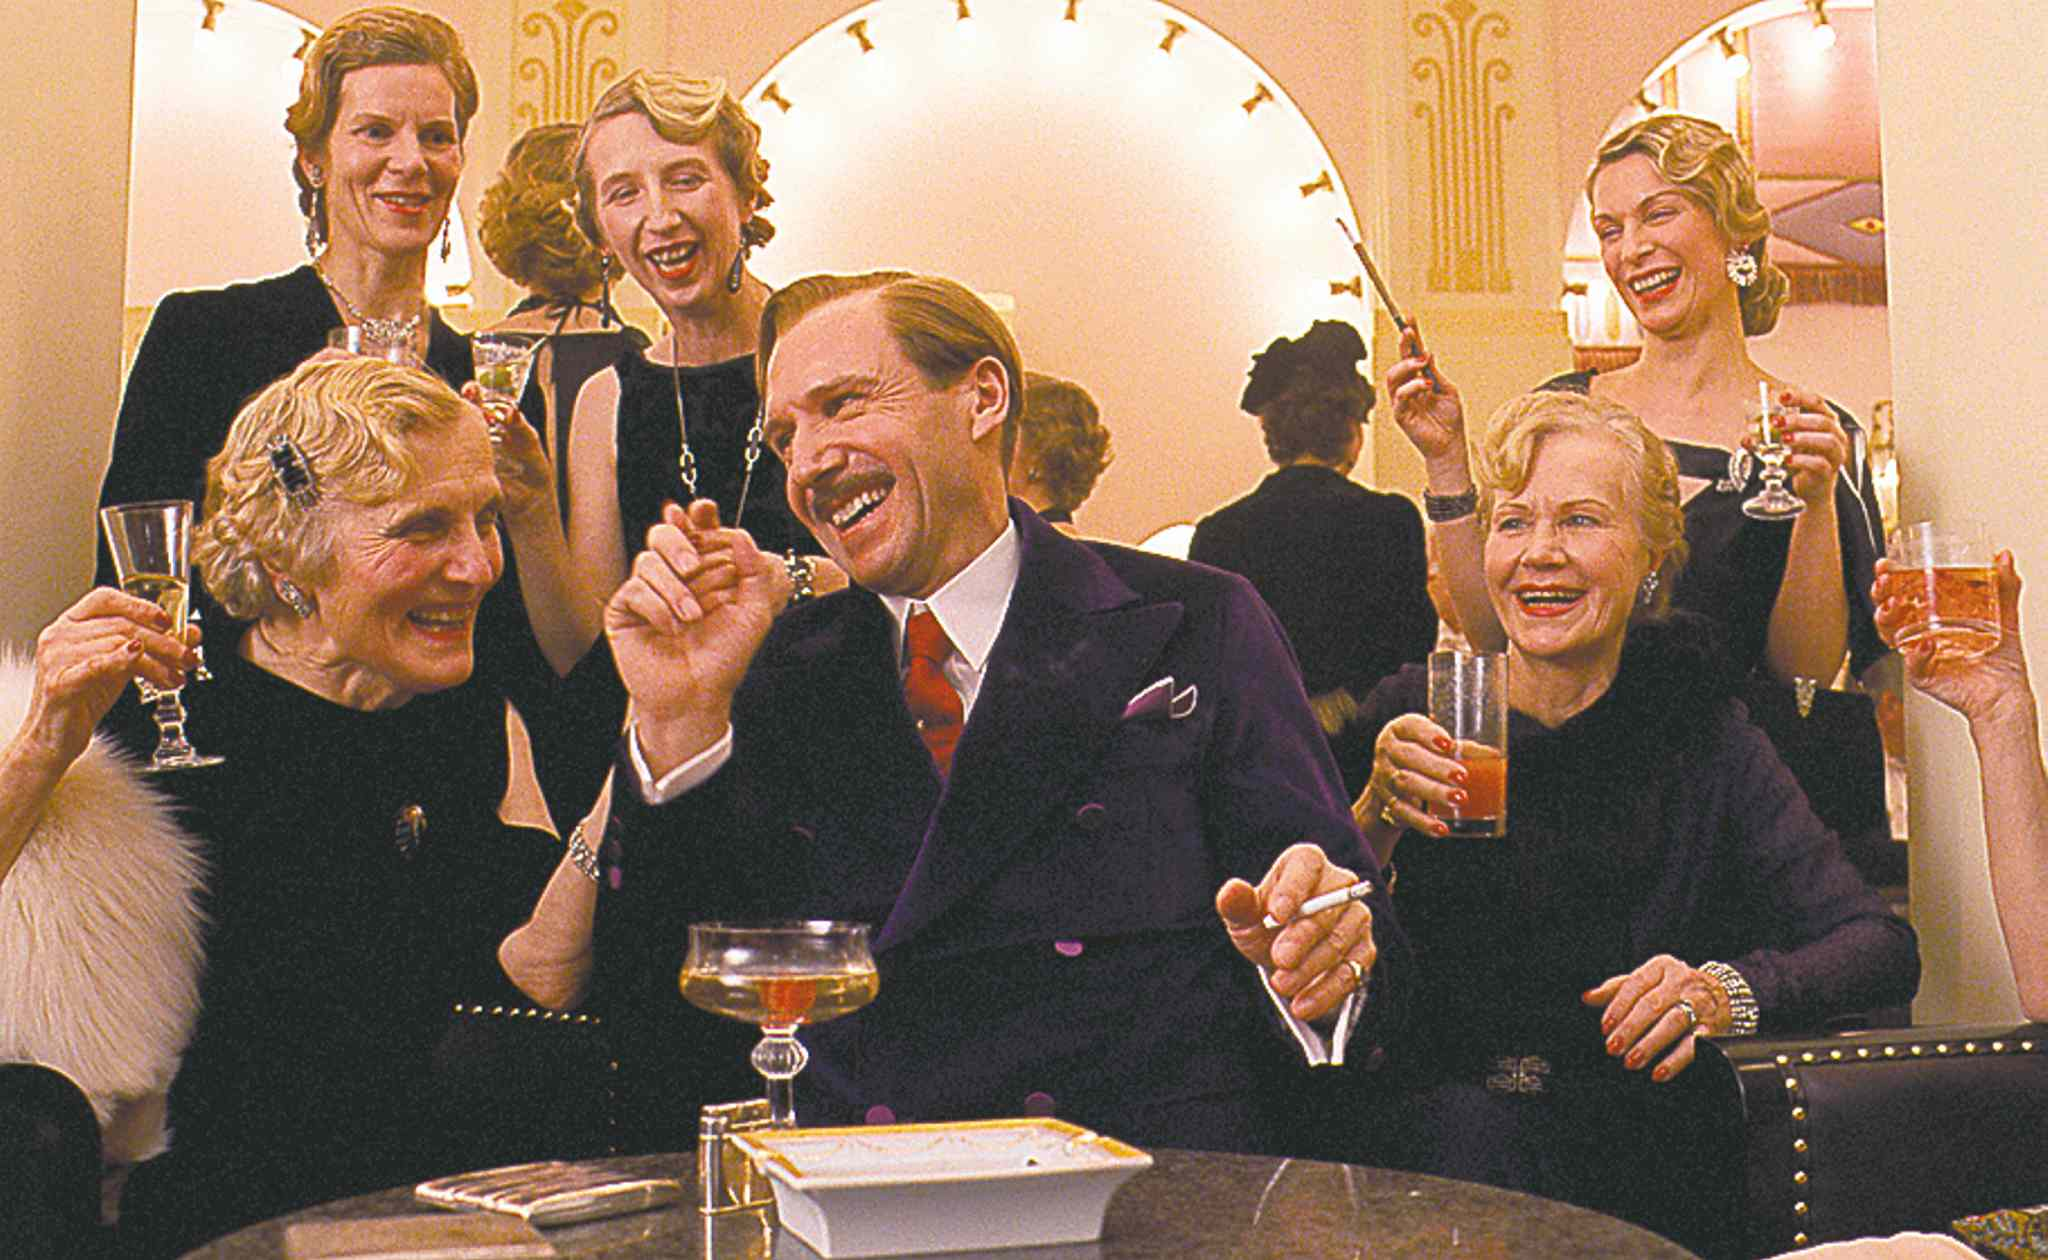 Ralph Fiennes, as M. Gustave, romances guests at the Grand Budapest Hotel.